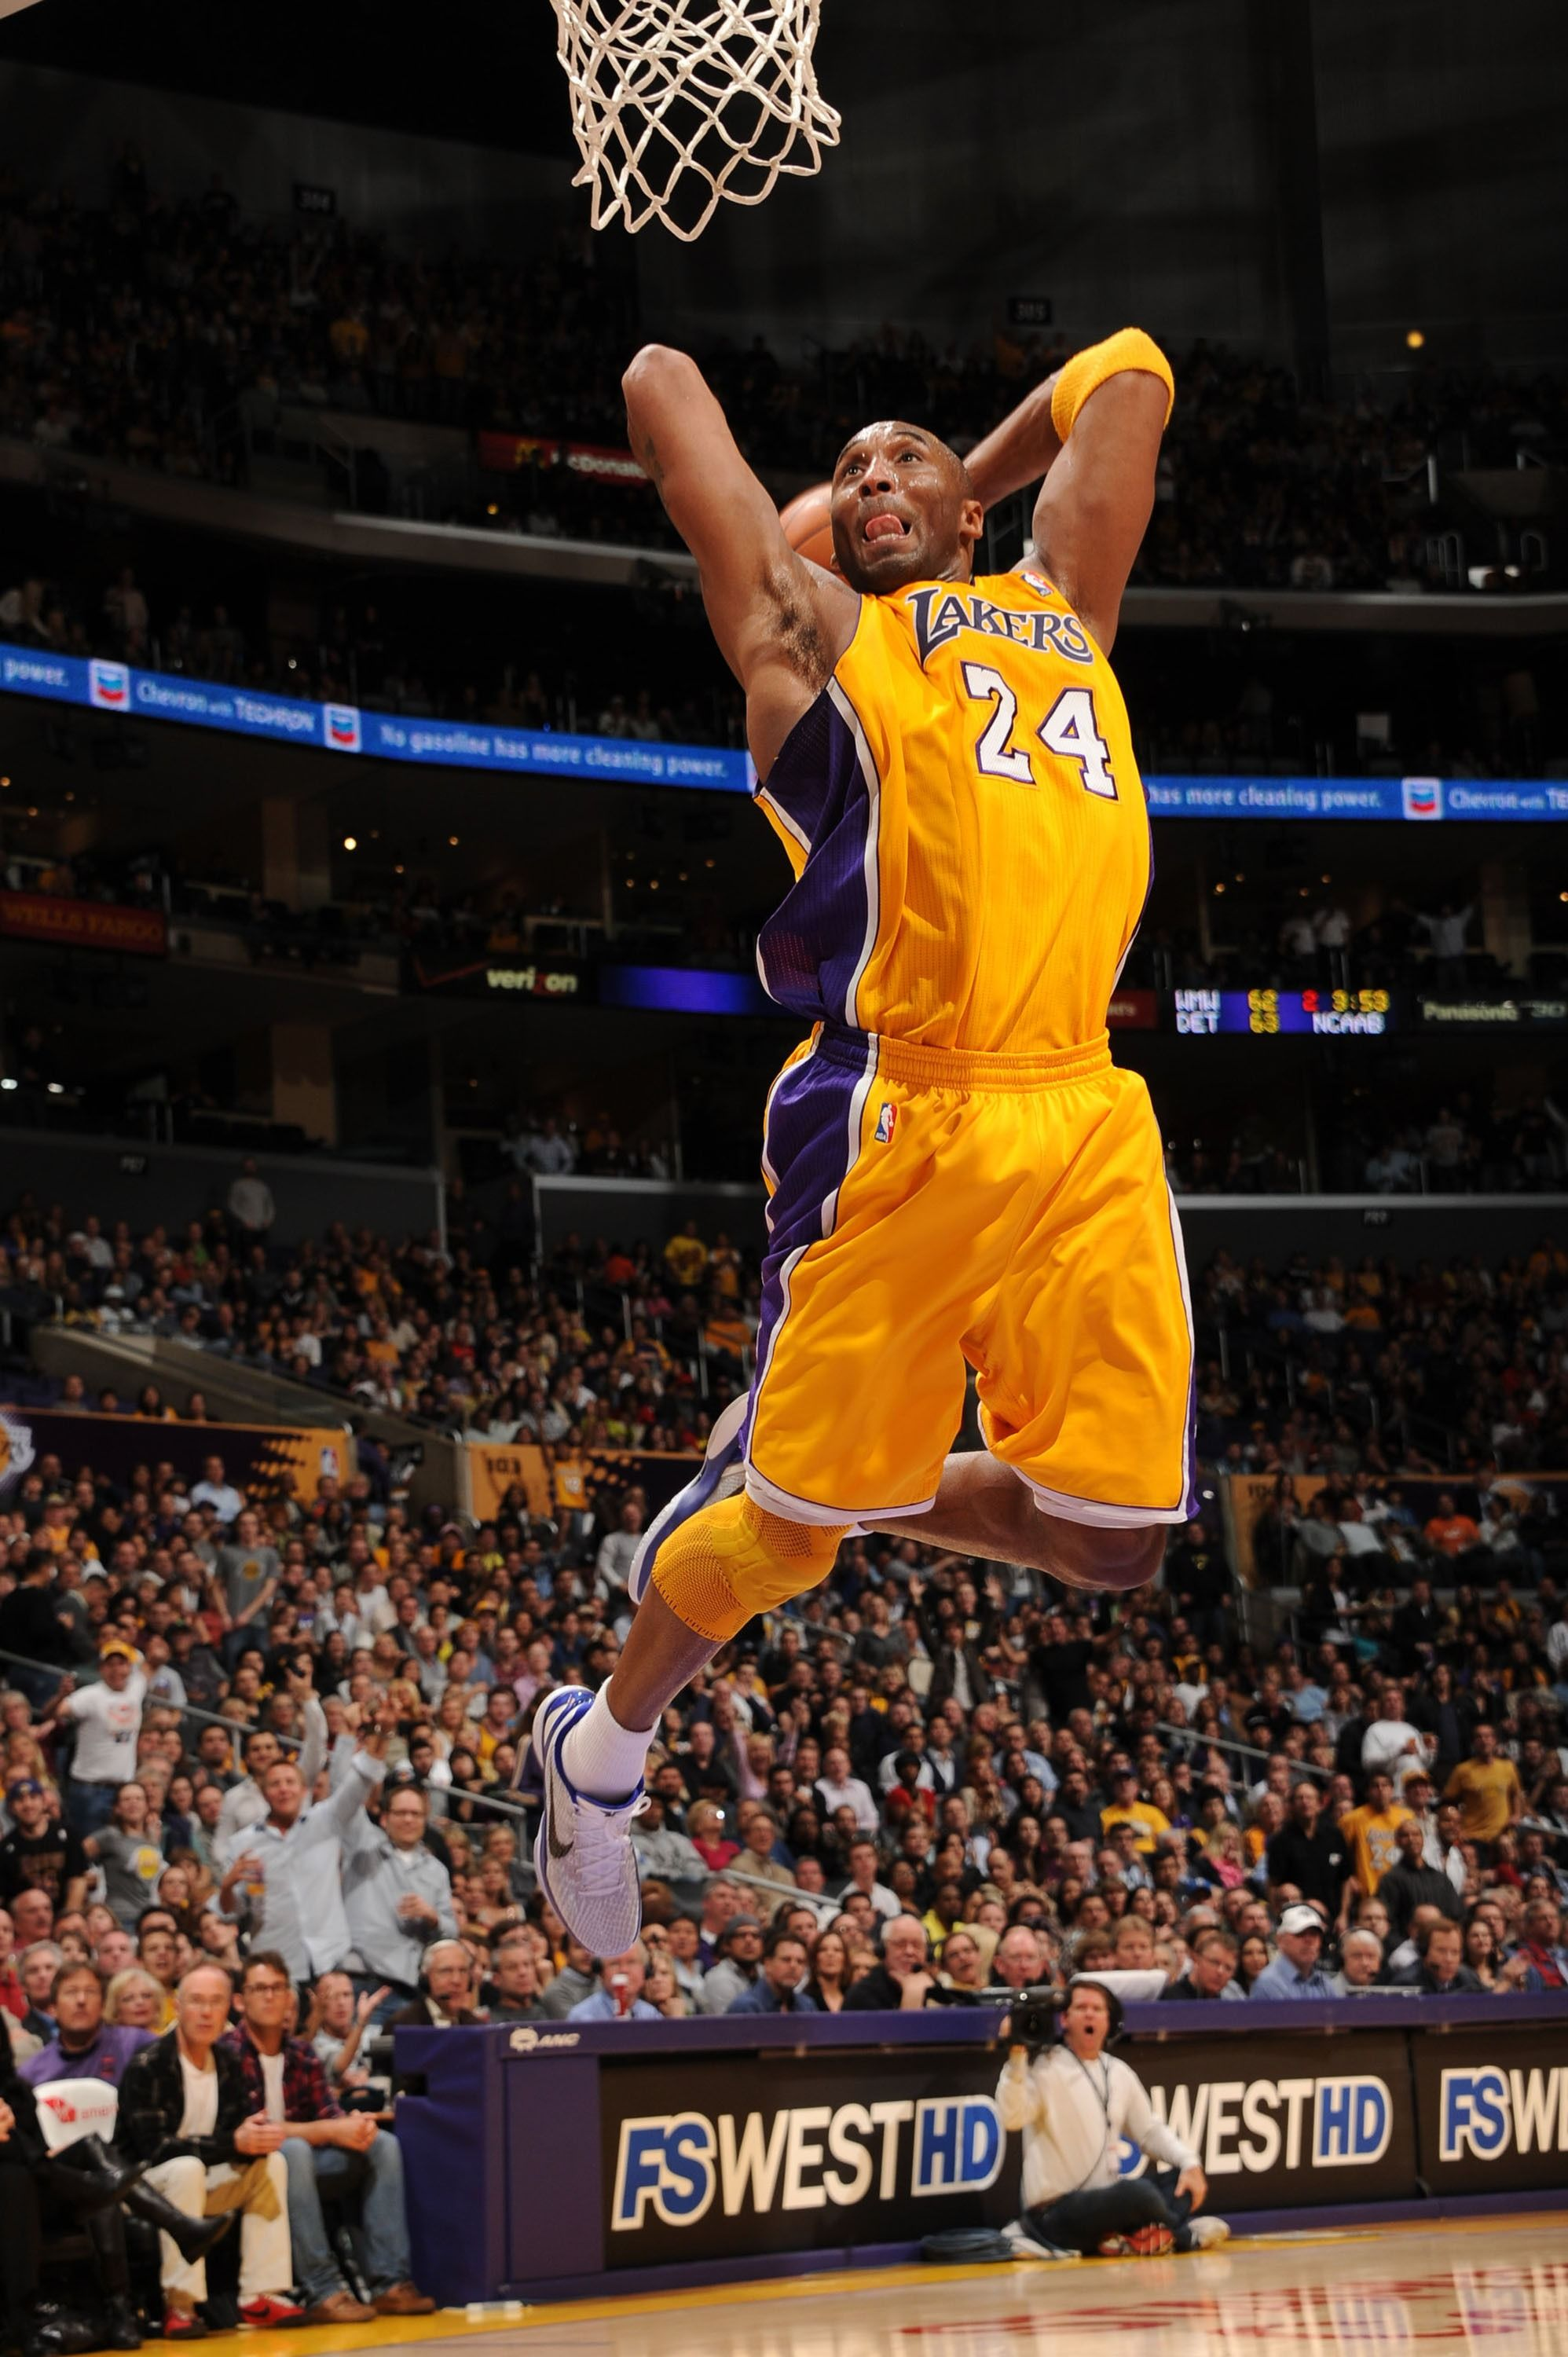 Kobe Bryant dunking during one of his games in the NBA | Source: Getty Images/GlobalImagesUkraine